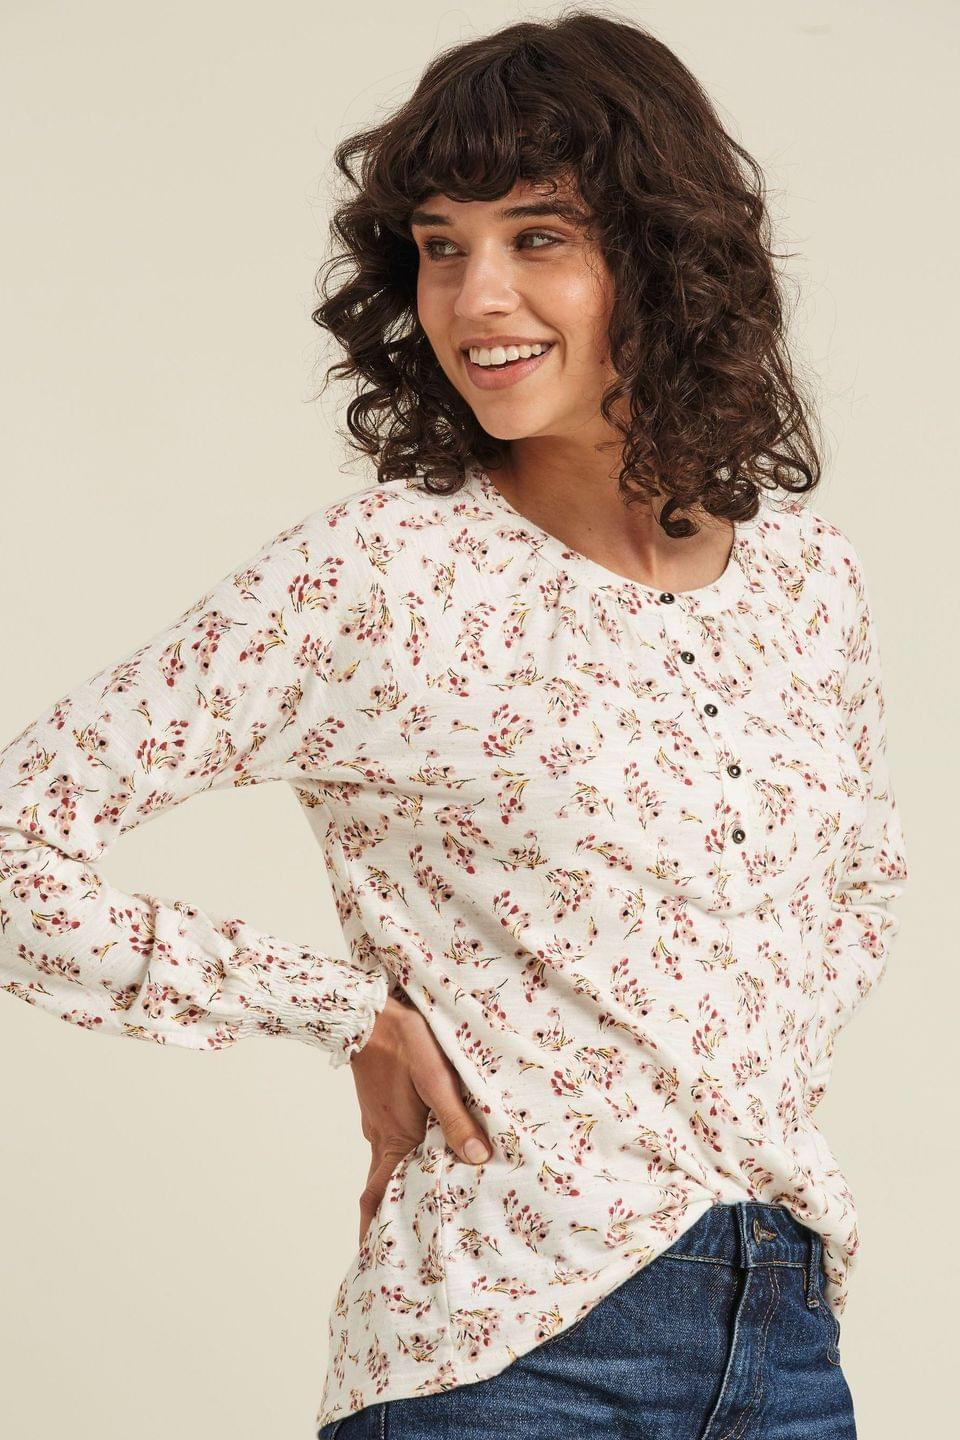 Women's FatFace Natural Uma Brushstroke Floral Top